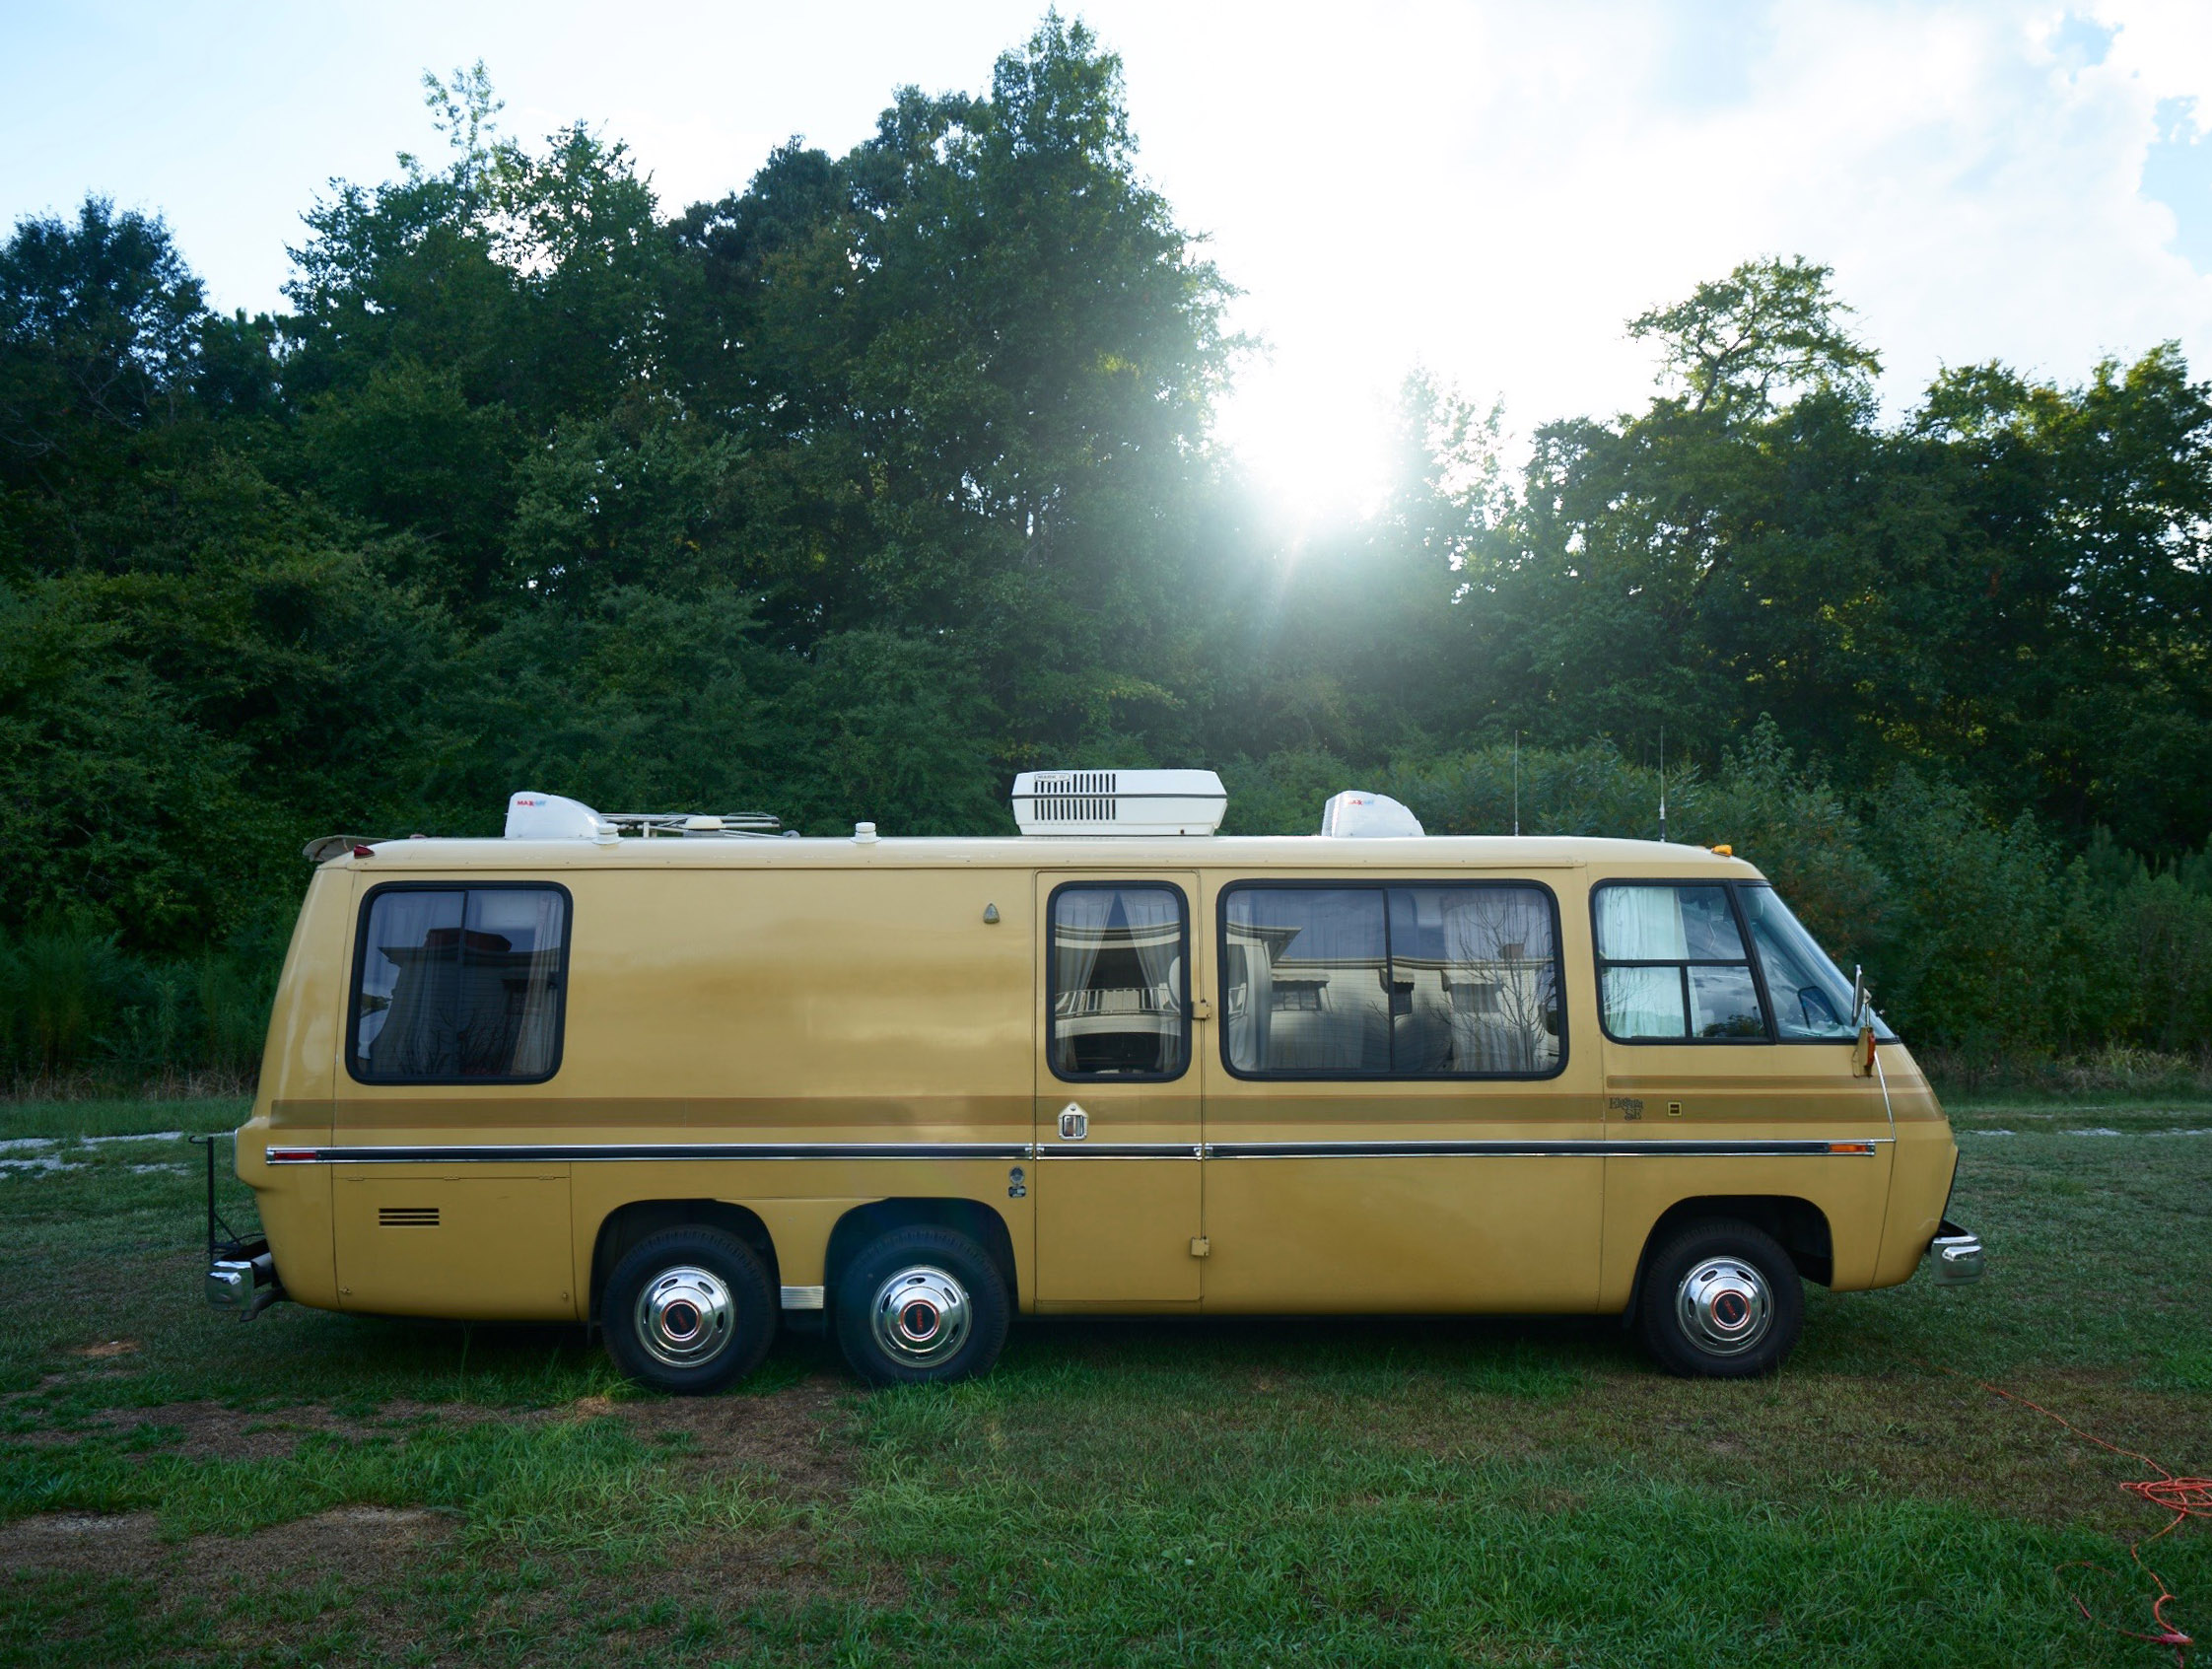 This is my 1974 GMC Eleganza which will be my home as I travel the US indefinitely.